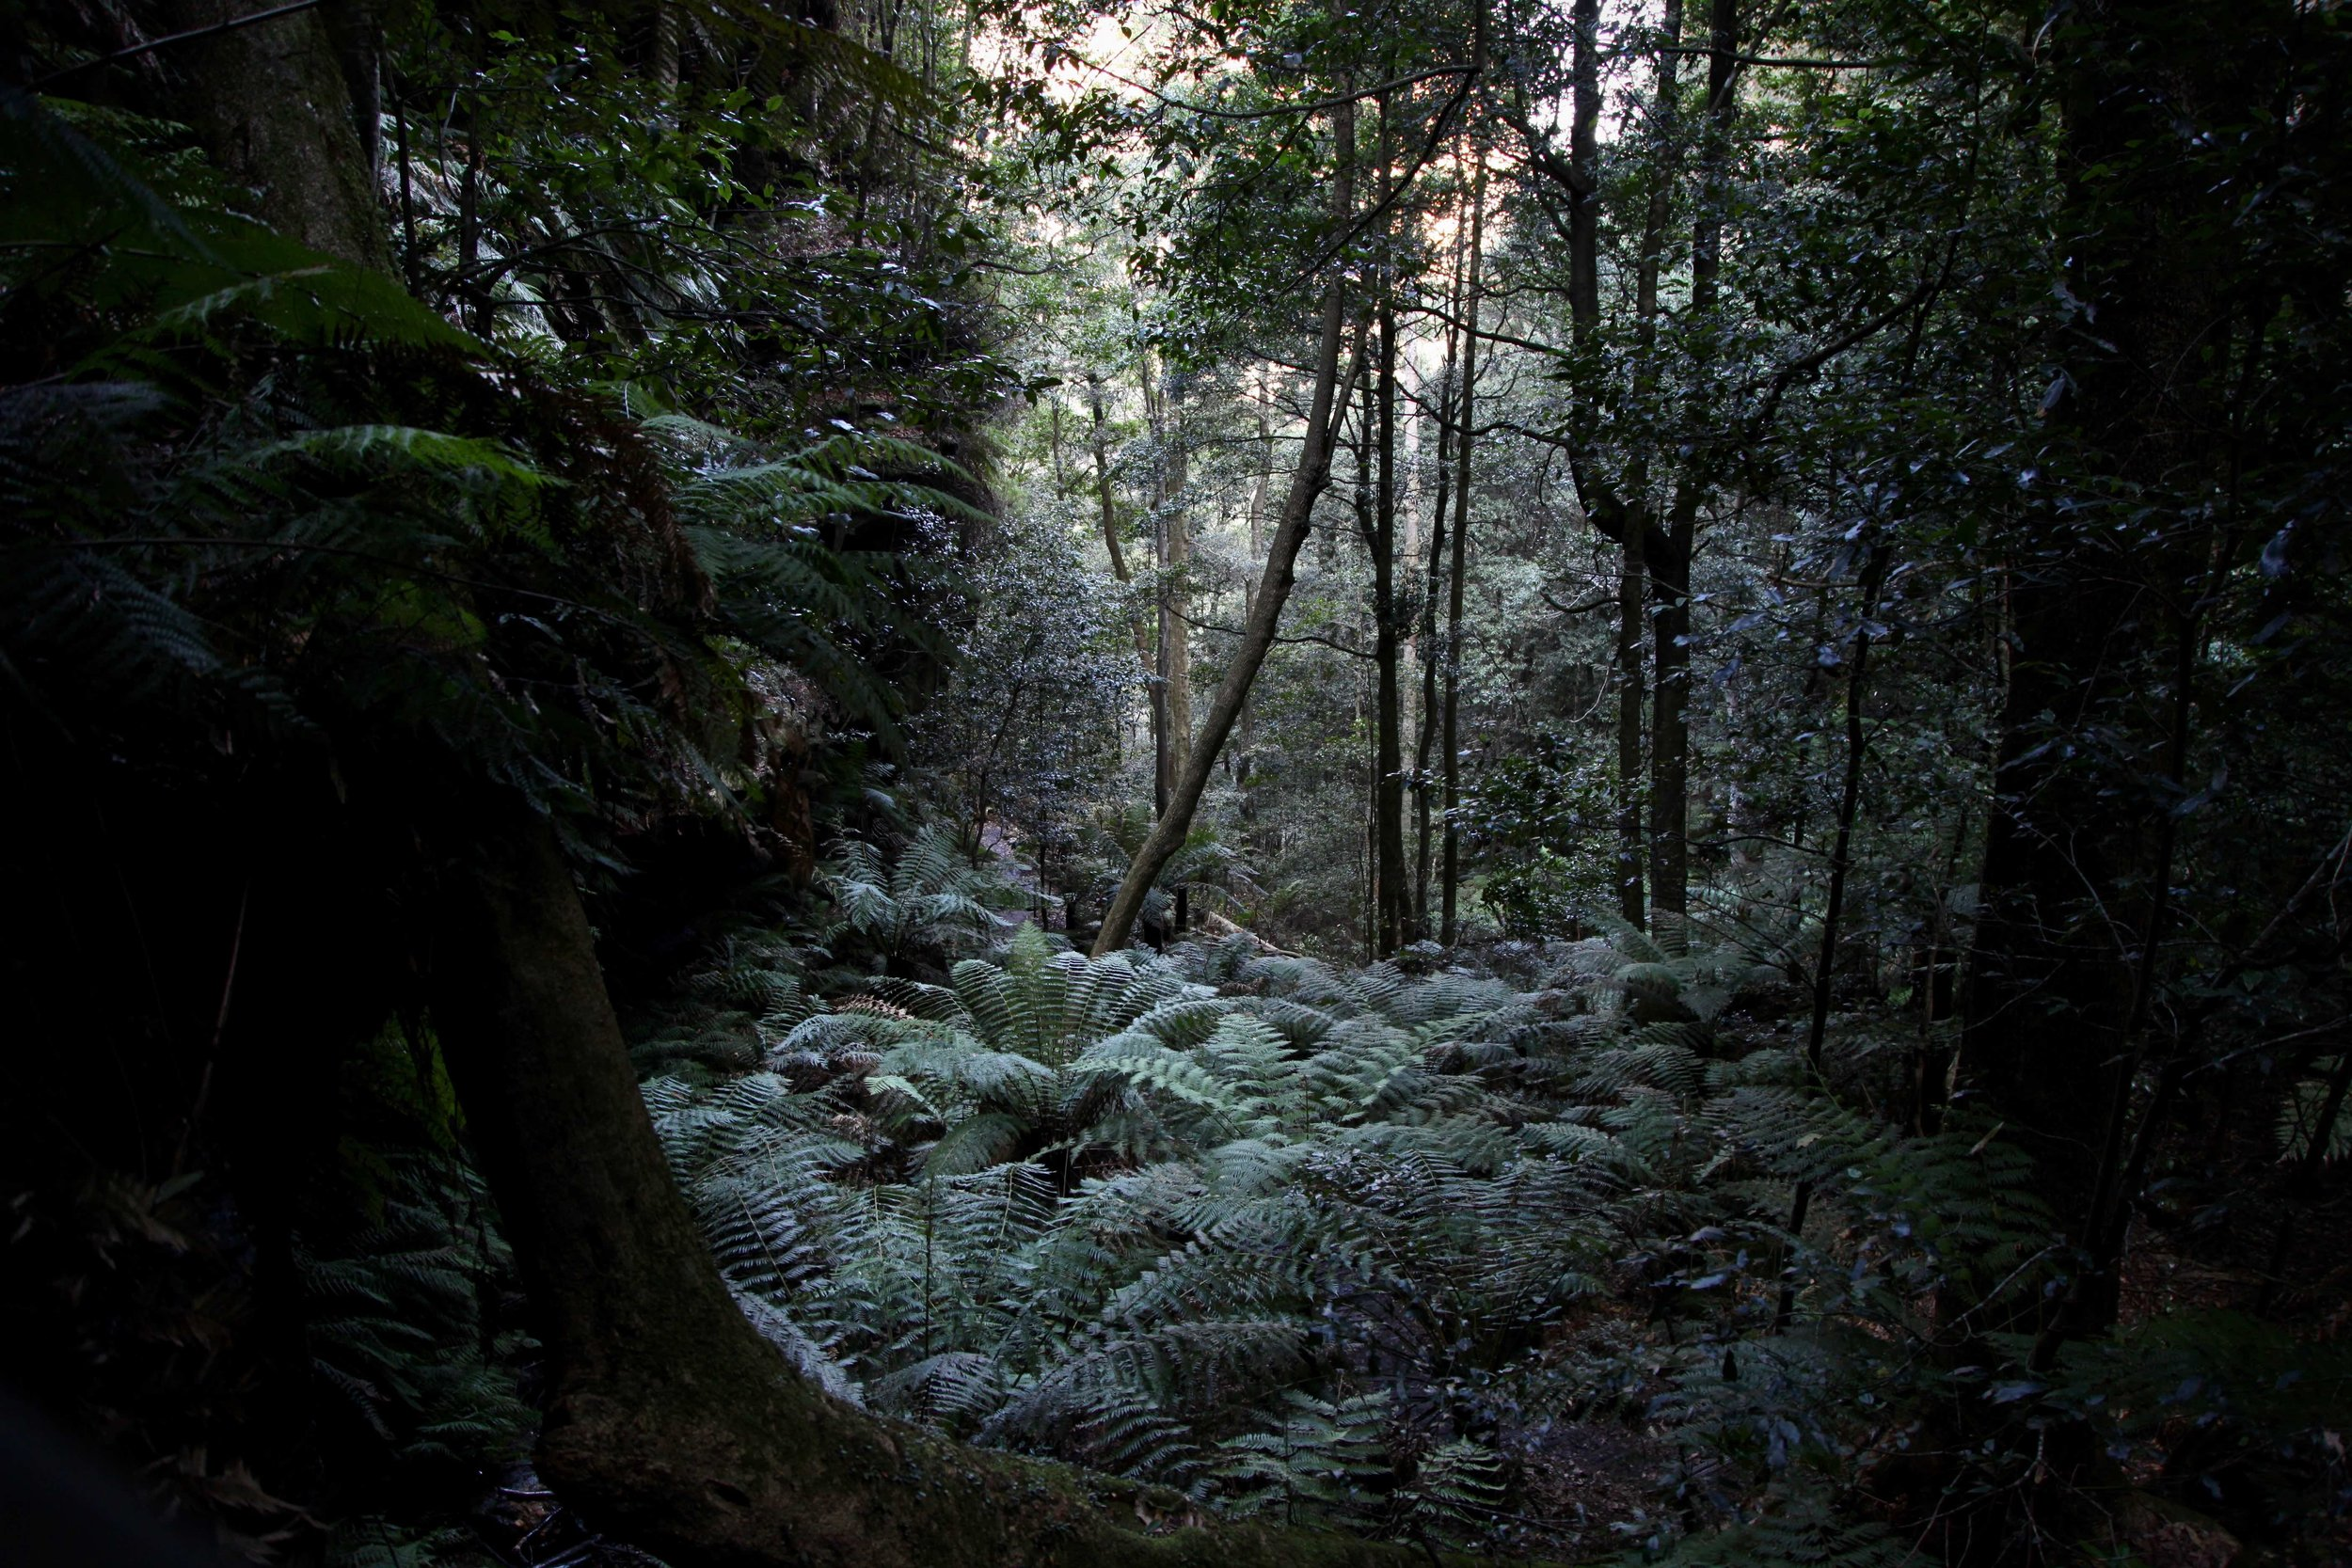 Hiking through Leura Forest you'll spot plenty of mossy trees and ferns, and you might spot Lyrebirds too, before arriving at the cascades.